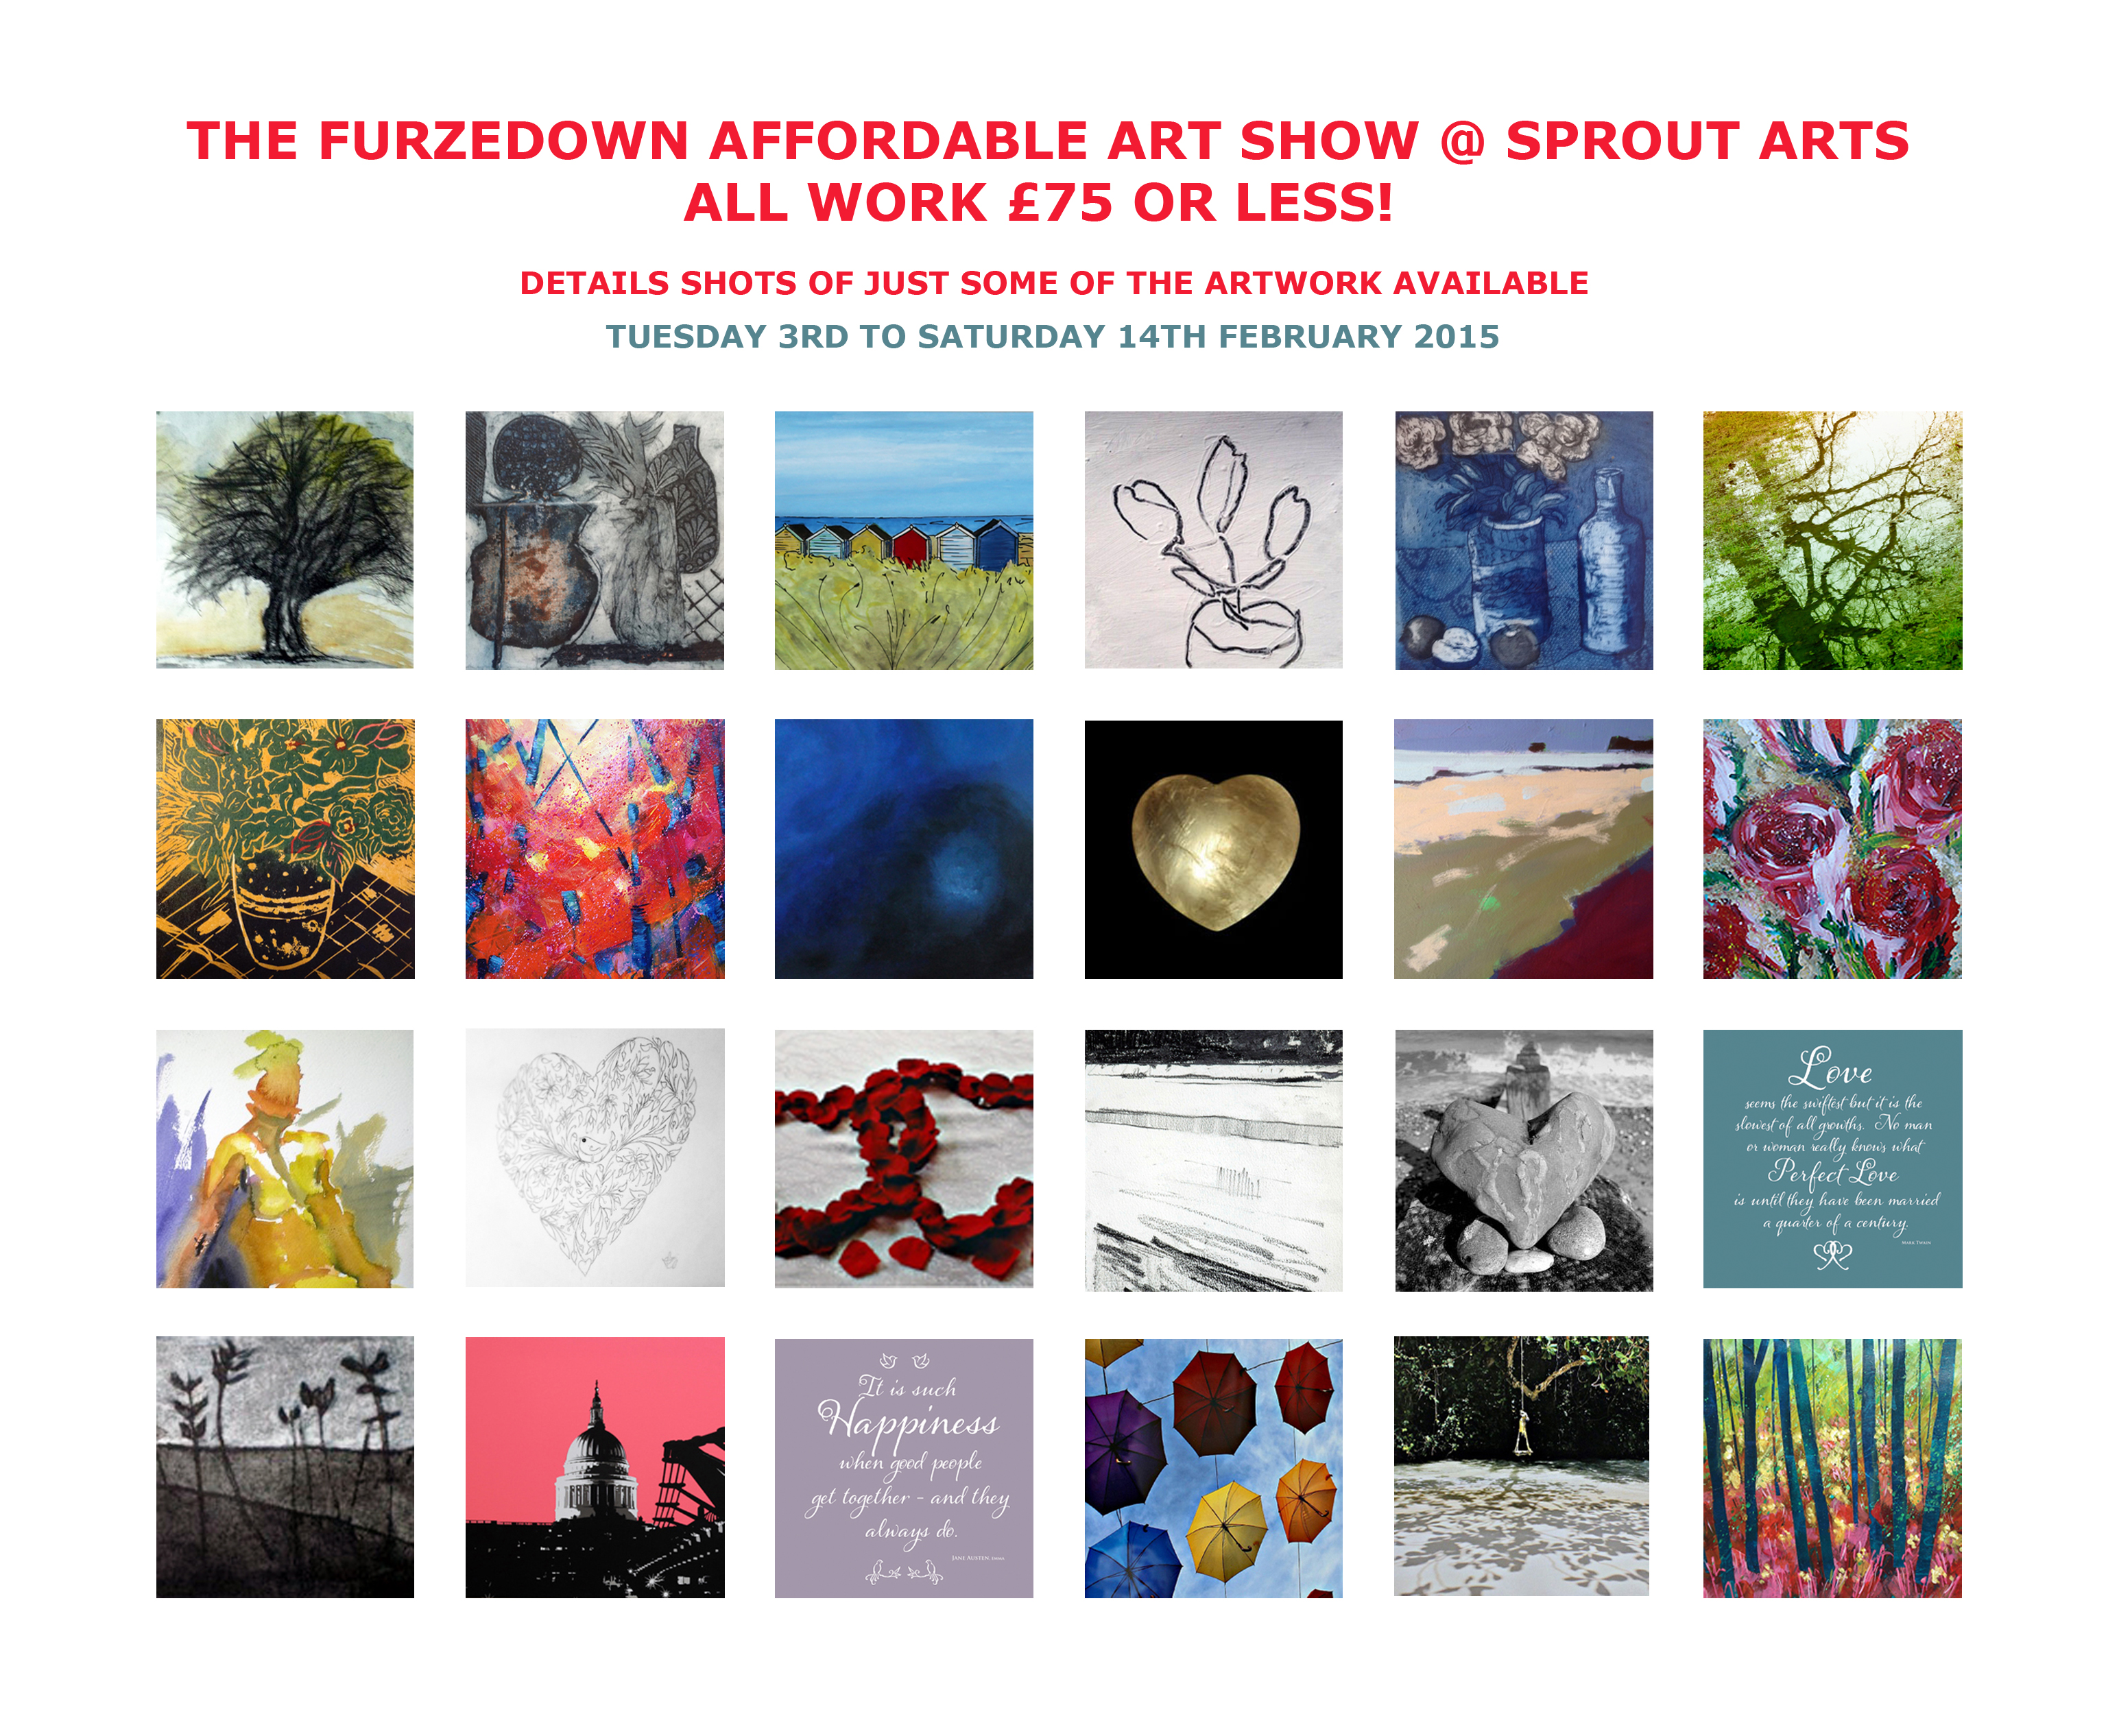 FURZEDOWN AFFORDABLE ART SHOW @ SPROUT ARTS 2